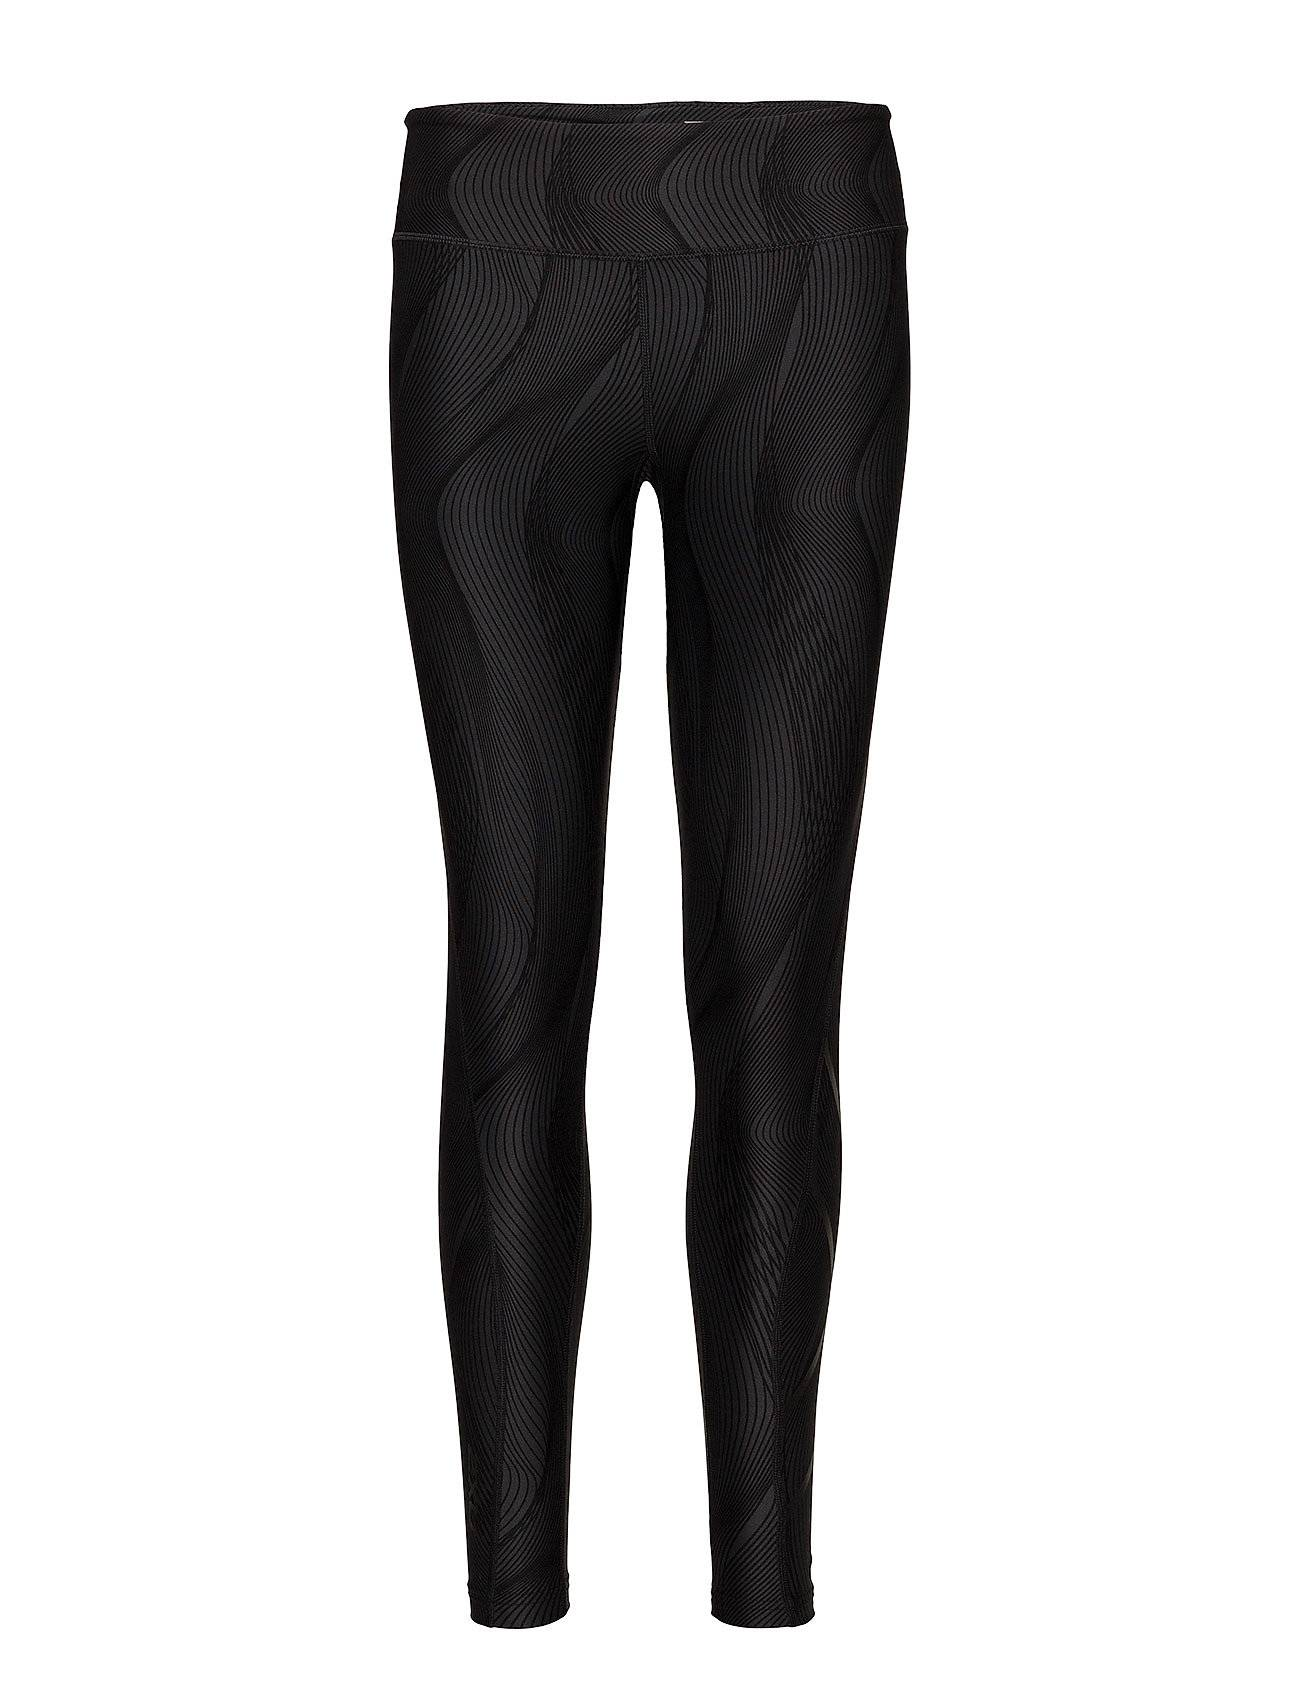 2XU Midriseprinttights